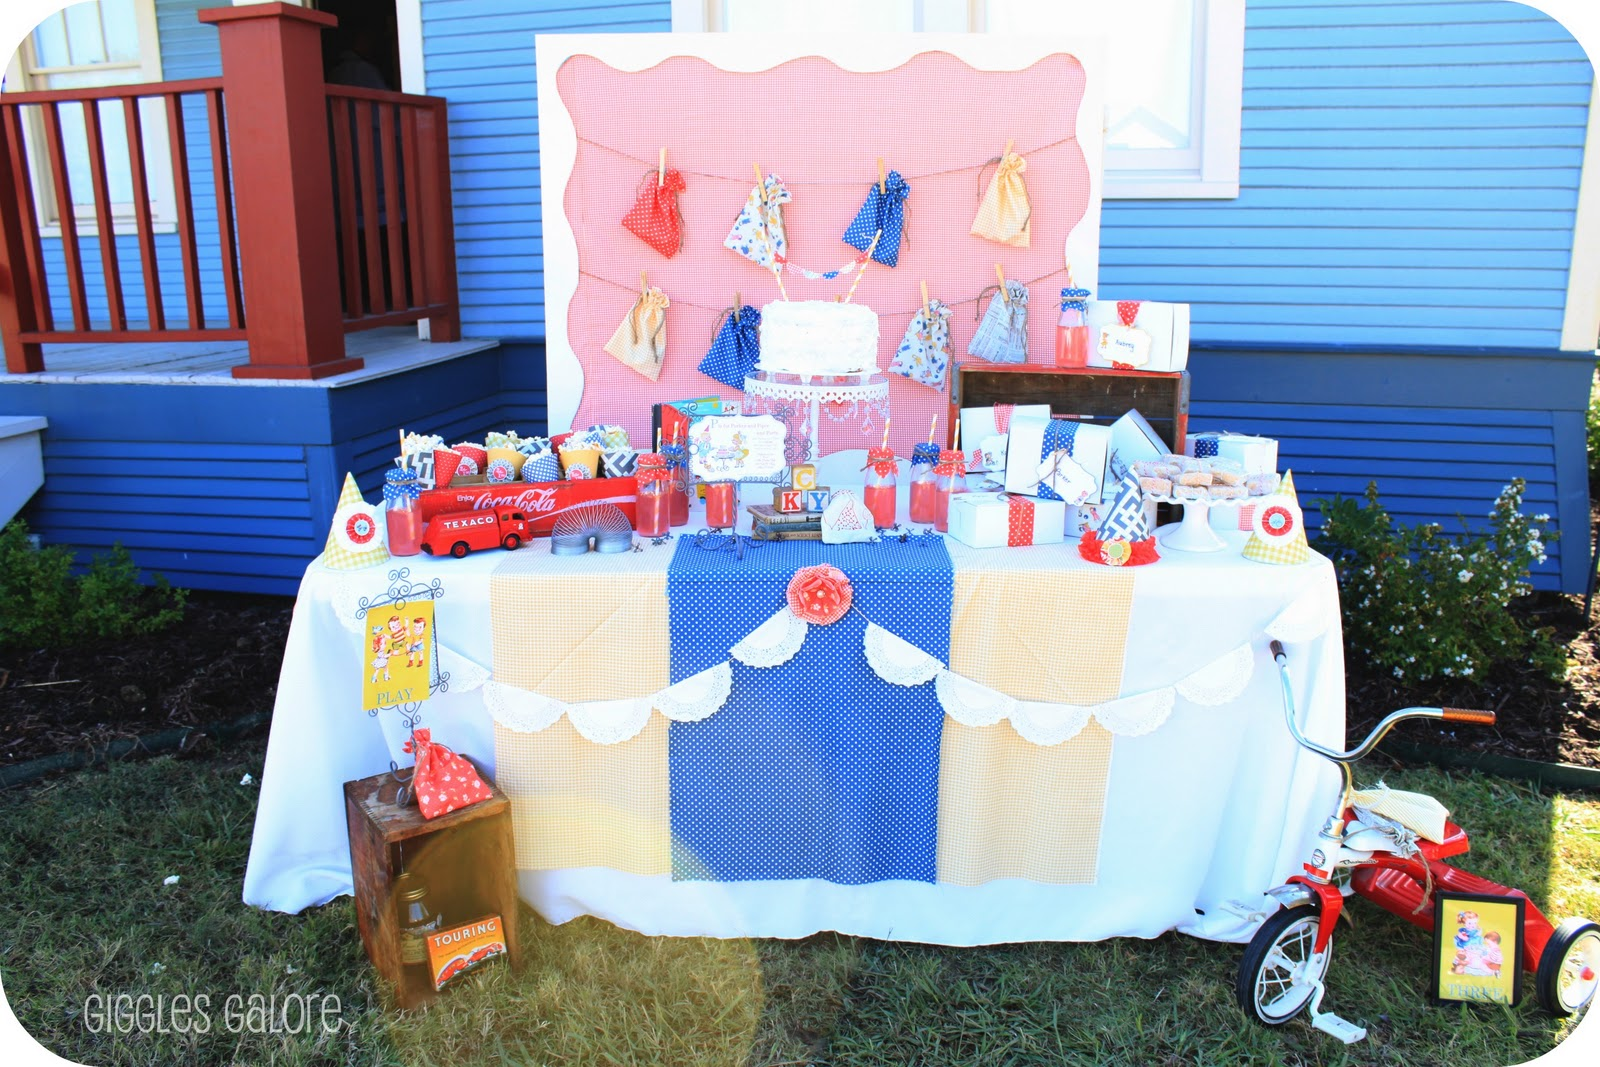 Party Backdrop DIY Frame Giggles Galore